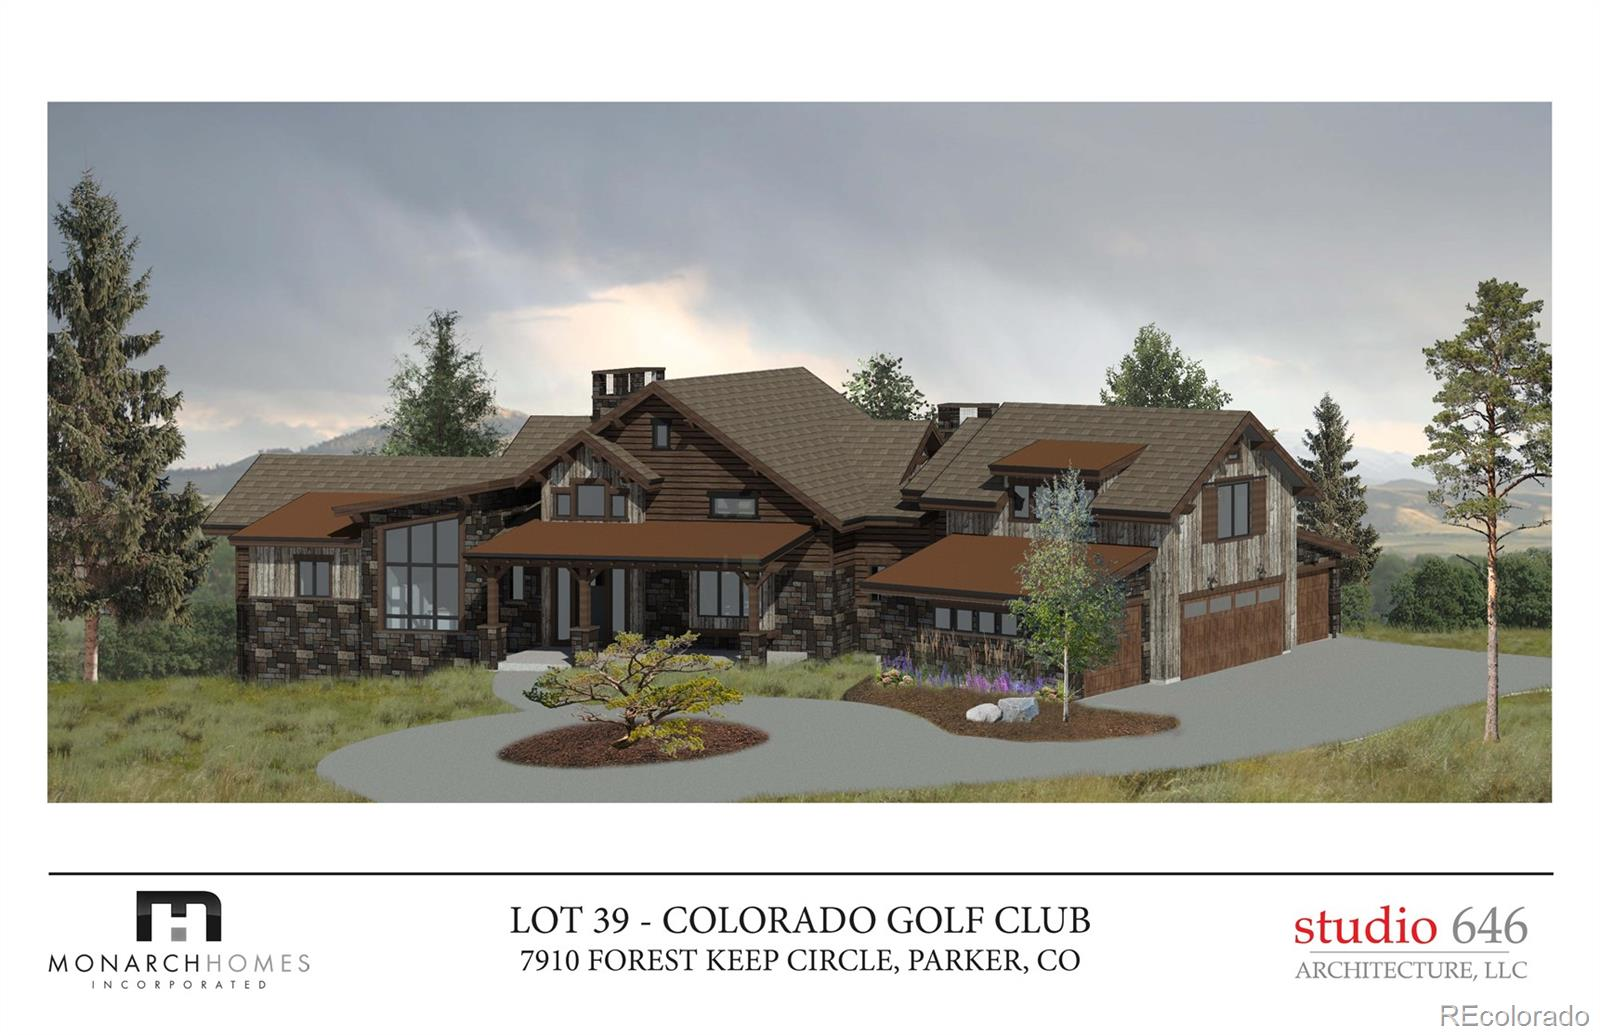 Located in the exclusive gated community at Colorado Golf Club, this brand-new custom home features a sophisticated architectural style characteristic of a modern farmhouse with a twist of rustic industrial flair. Skillfully crafted by the artisans of Monarch Homes, this stunning estate sits on nearly 2 acres of elevated rolling meadow blessed with towering Ponderosa pines and distant mountain views. The incredible open concept main level has rich hardwood floors throughout and features a soaring great room with a unique free-standing stone fireplace and huge windows showcasing the captivating views. The u-shaped kitchen wraps around a massive center island and opens to the great room, dining area, hearth room, and the adjoining covered deck, creating a stunning common area for family gatherings large and small. The main floor master retreat has a full-wall fireplace surrounded by custom built-ins, a private owner's deck, an enormous custom walk-in closet, and a first-class bath with every luxurious finish. A handsome study with built-ins, a powder bath, a light-filled laundry room, a convenient mudroom, and the oversized 4-car garage complete the main level. A rear stairway leads to the upper guest quarters, perfect for teens, nanny, or special houseguests. The dramatic main staircase descends around the central stone fireplace and opens to the full walk-out lower level featuring a grand rec room with billiards and gaming area, tavern-style bar and wine room, two additional bedroom suites, 2nd laundry room, powder room, and exercise room or 5th bedroom. Full professional landscaping is included in the list price!